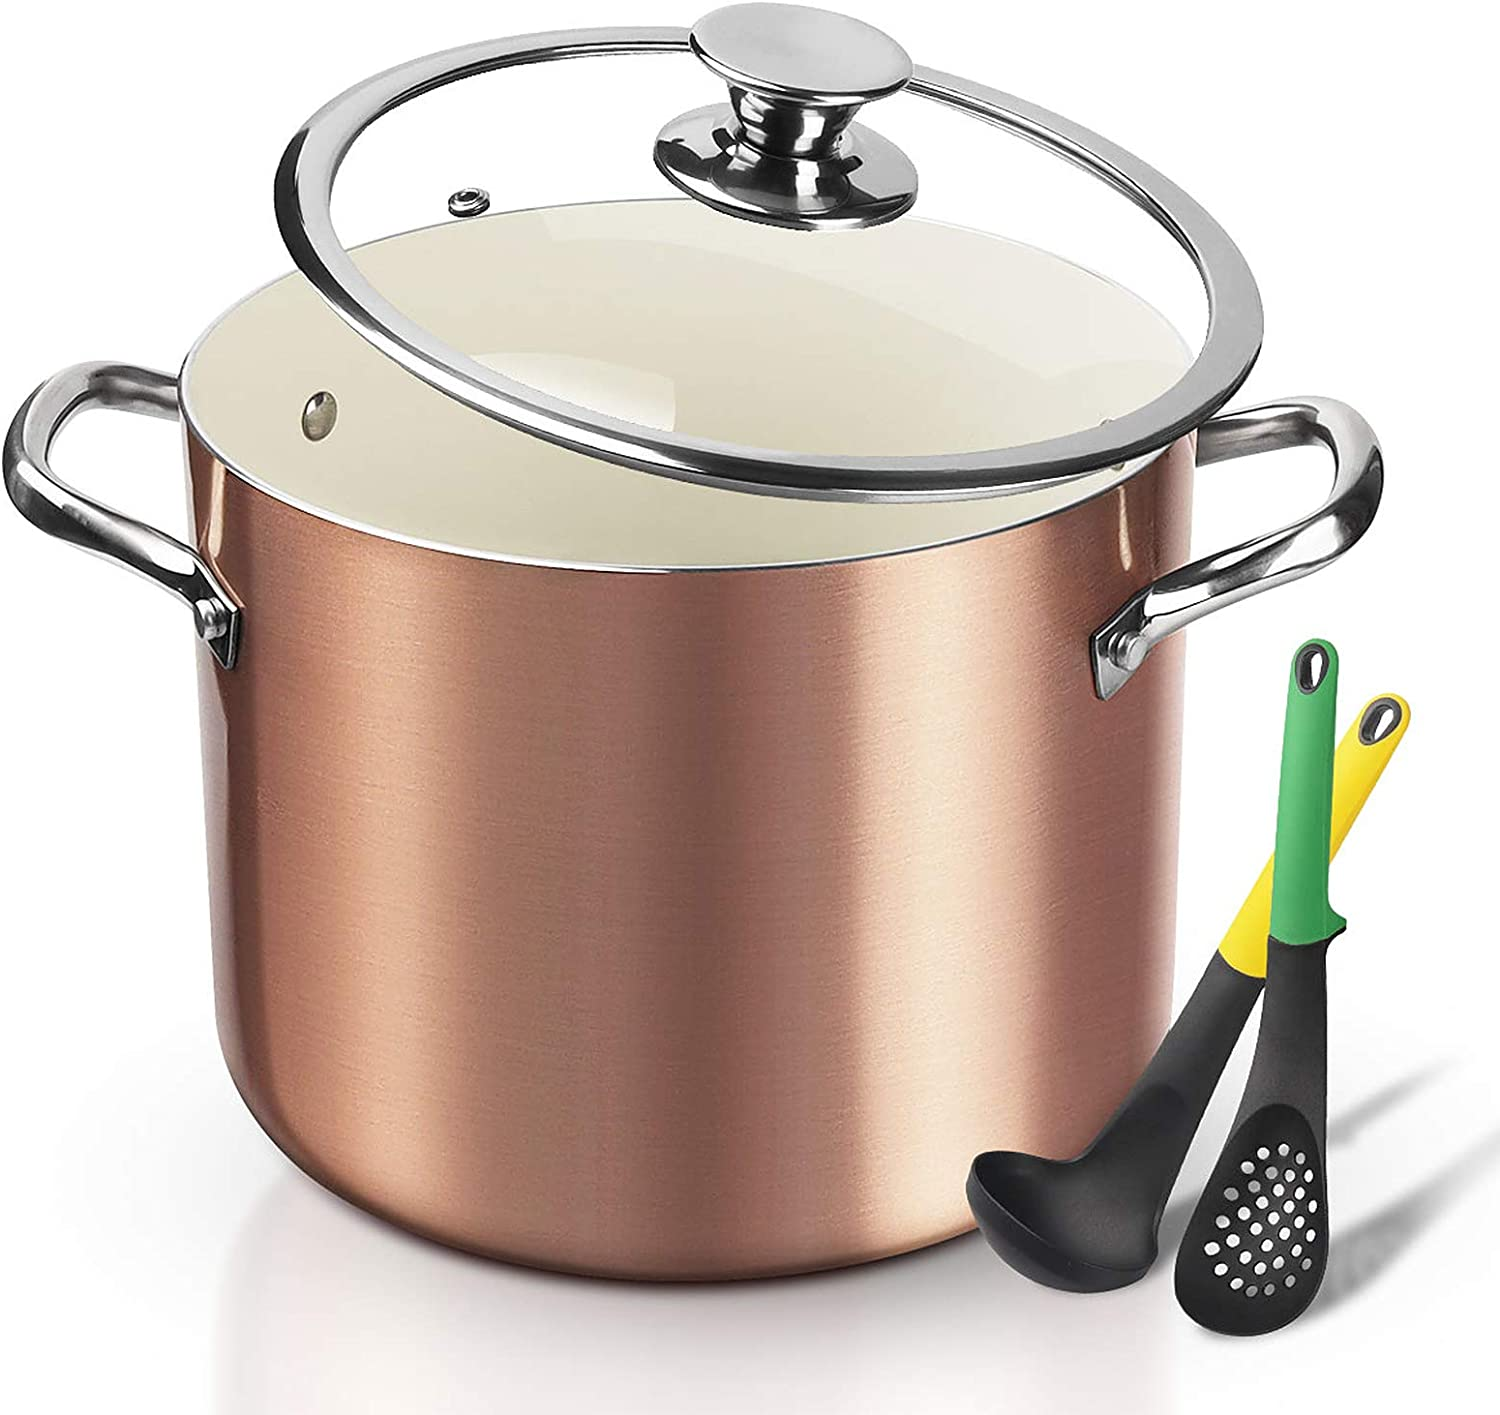 FRUITEAM Nonstick Stock Pot 7 Qt Soup Pasta Pot with Lid, 7-Quart Multi Stockpot Oven Safe Cooking Pot for Stew, Sauce & Reheat Food, Induction/ Oven/ Gas/ Stovetops Compatible for Family Meals